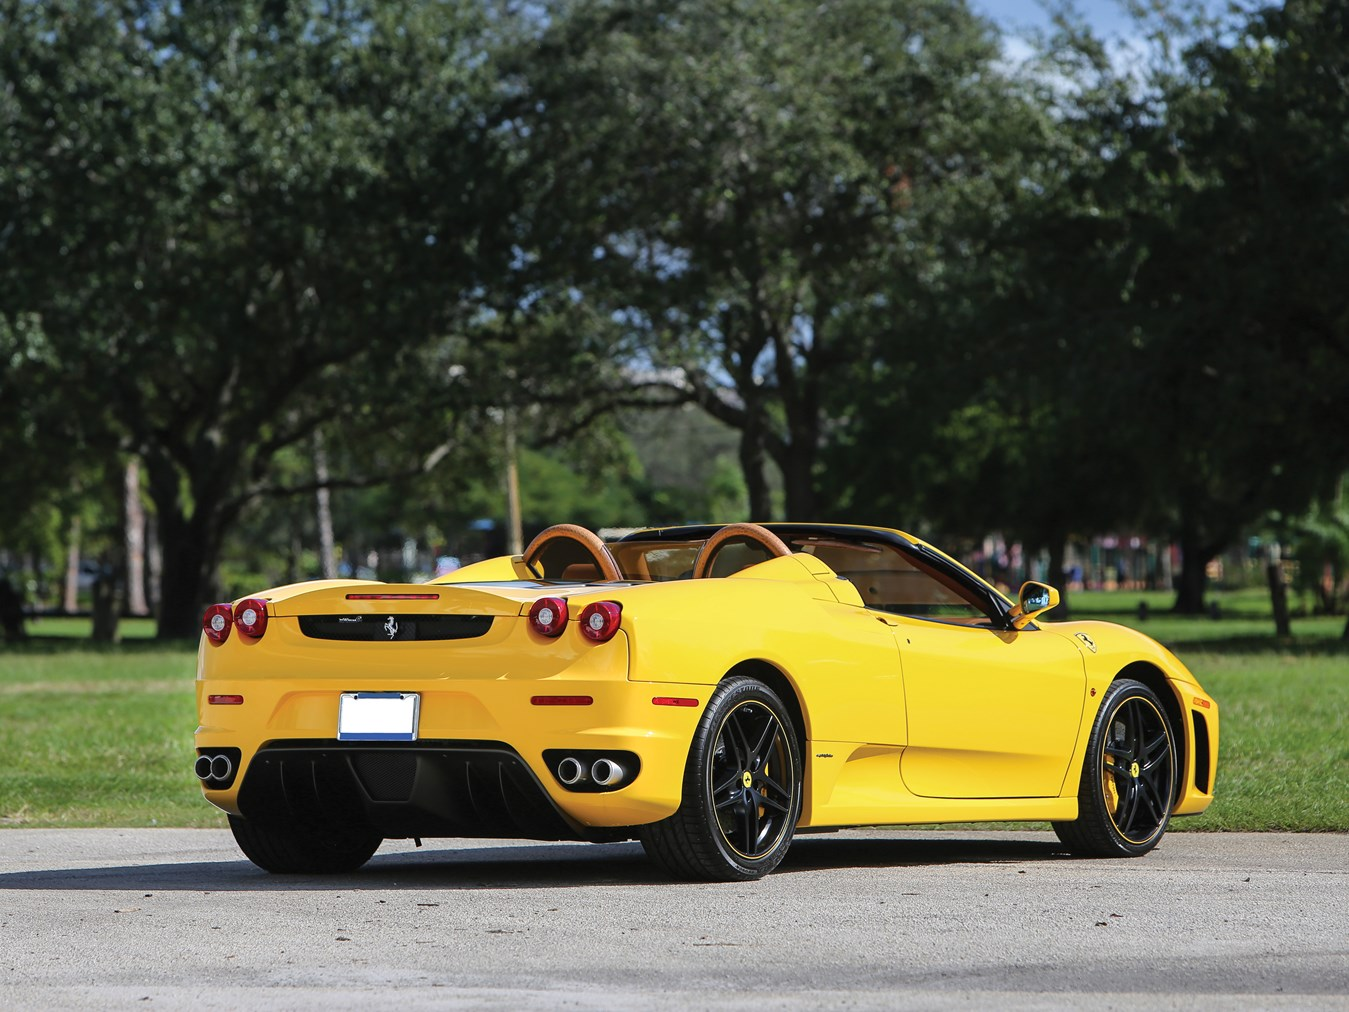 2007 Ferrari F430 Spider yellow rear